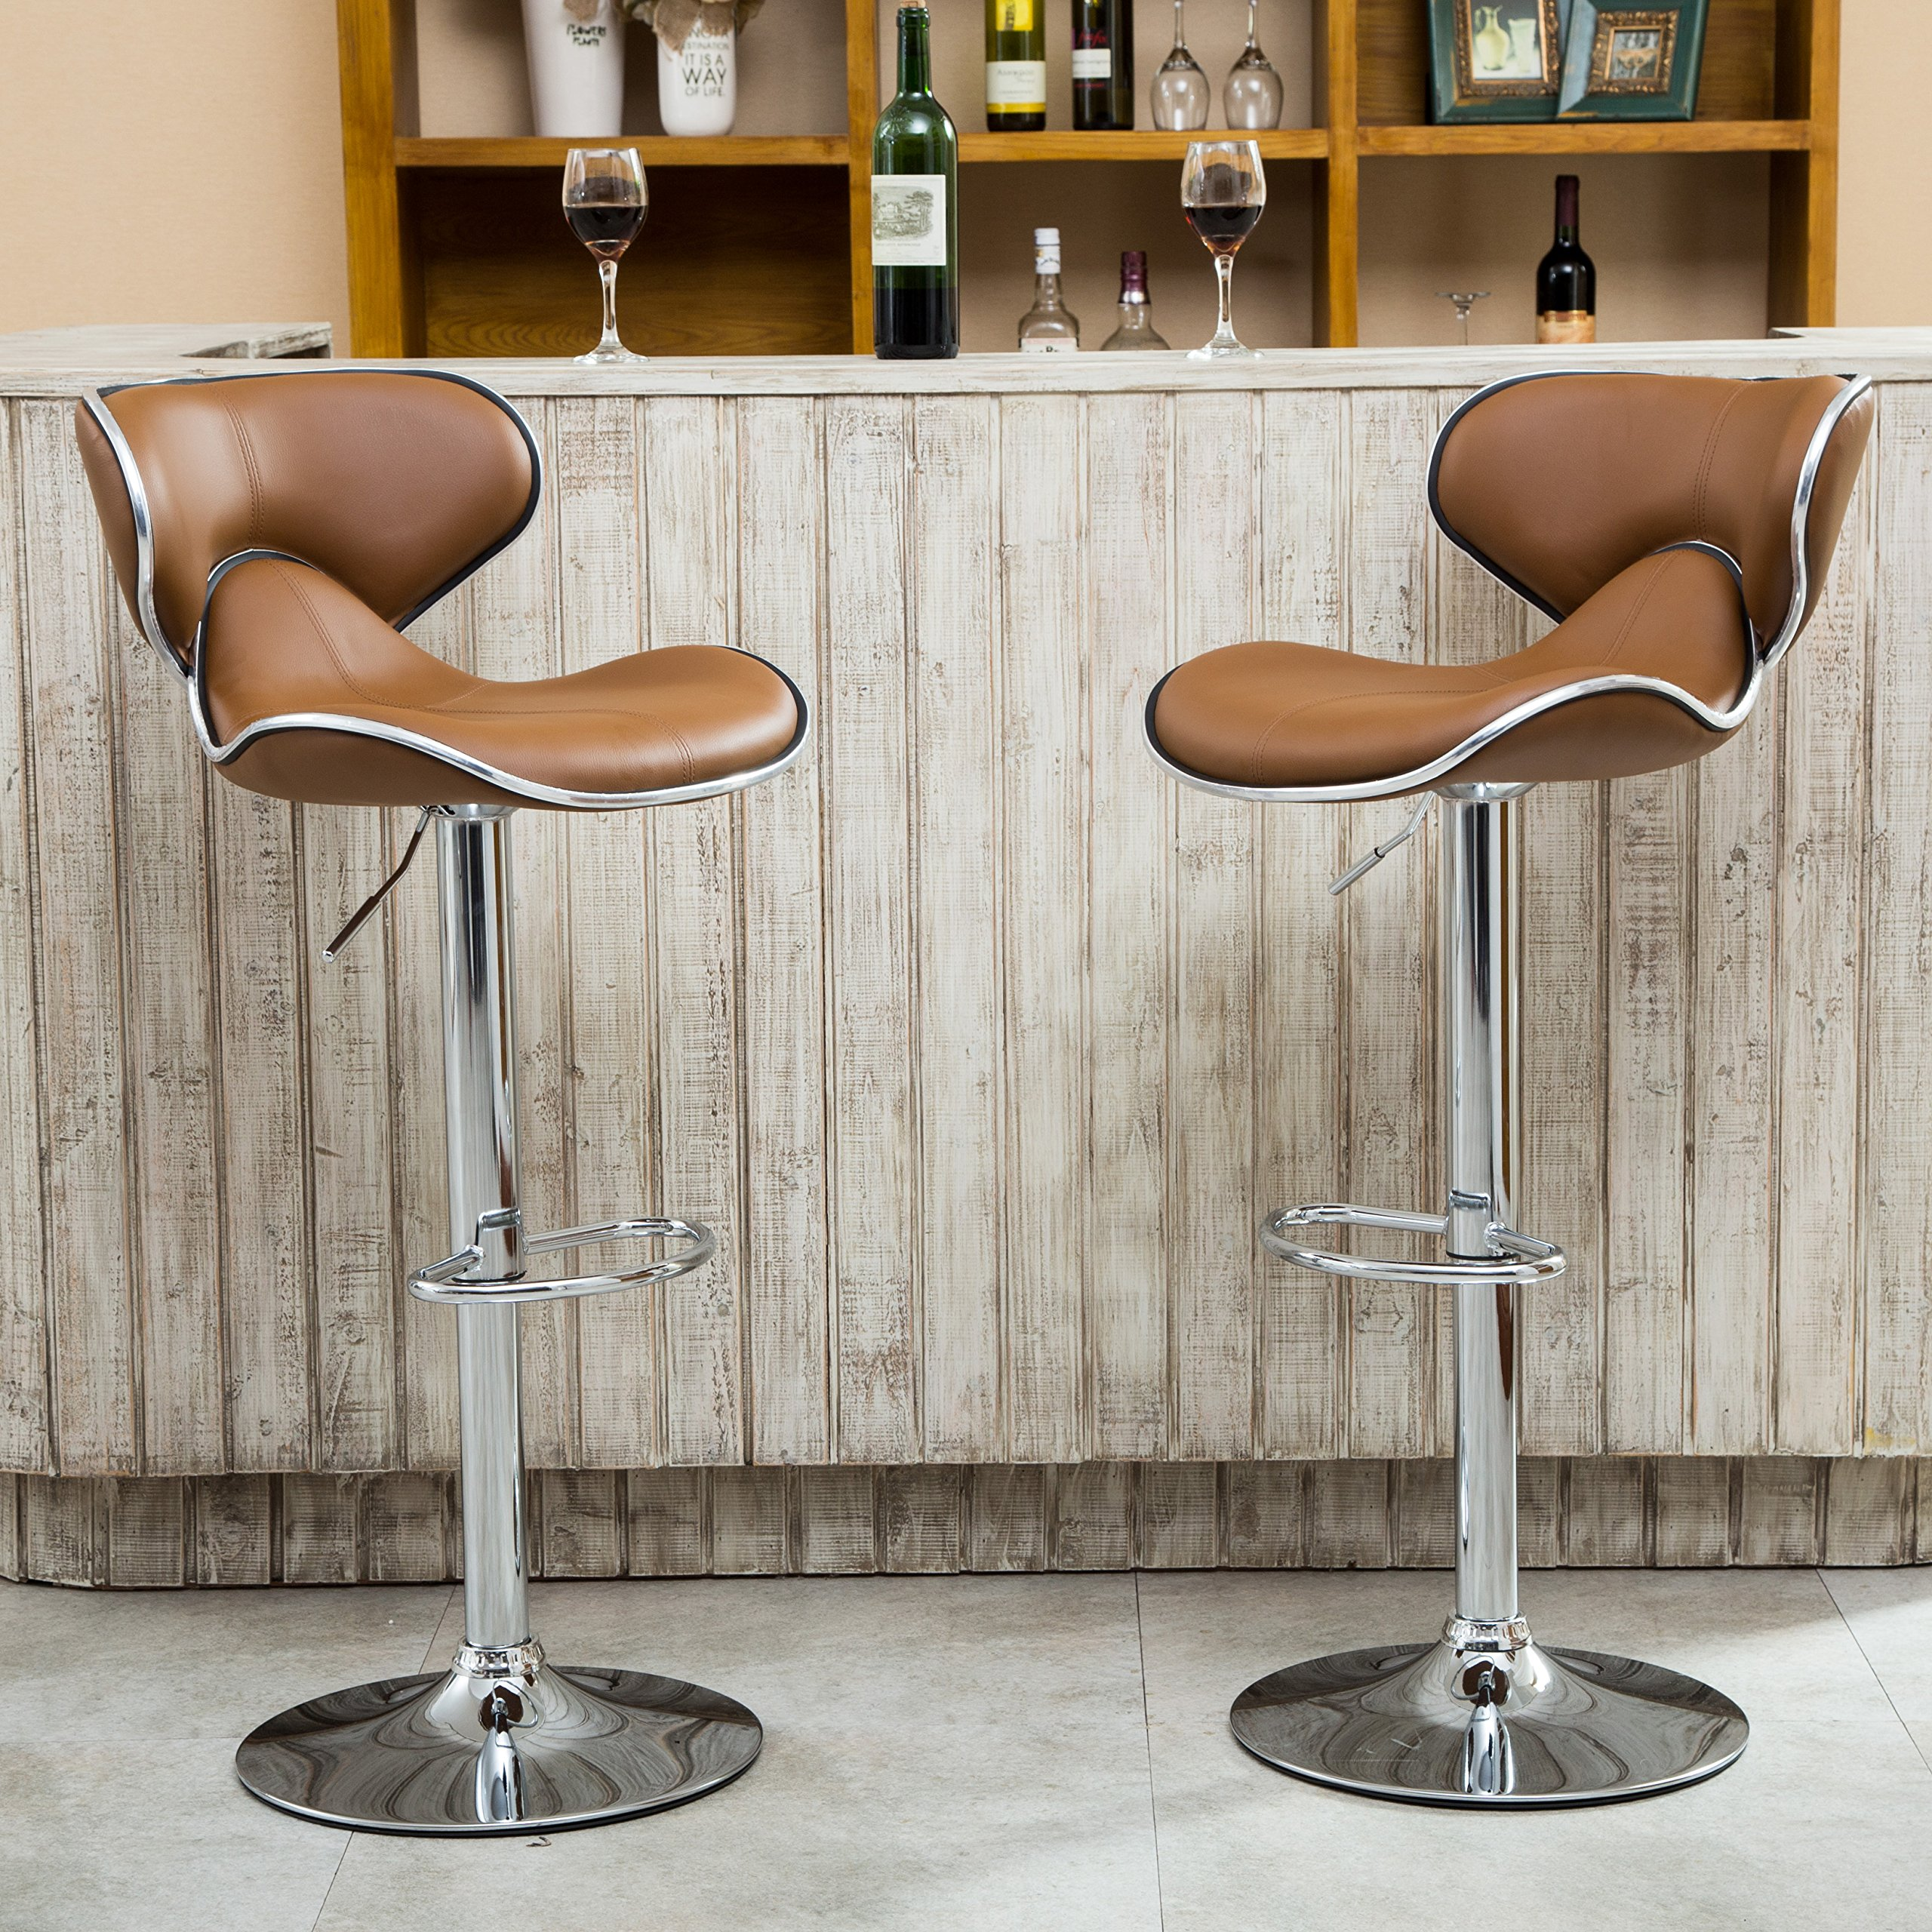 Roundhill Furniture PC138CL Masaccio Cushioned Leatherette Upholstery Airlift Adjustable Swivel Barstool with Chrome Base, Set of 2, Caramel by Roundhill Furniture